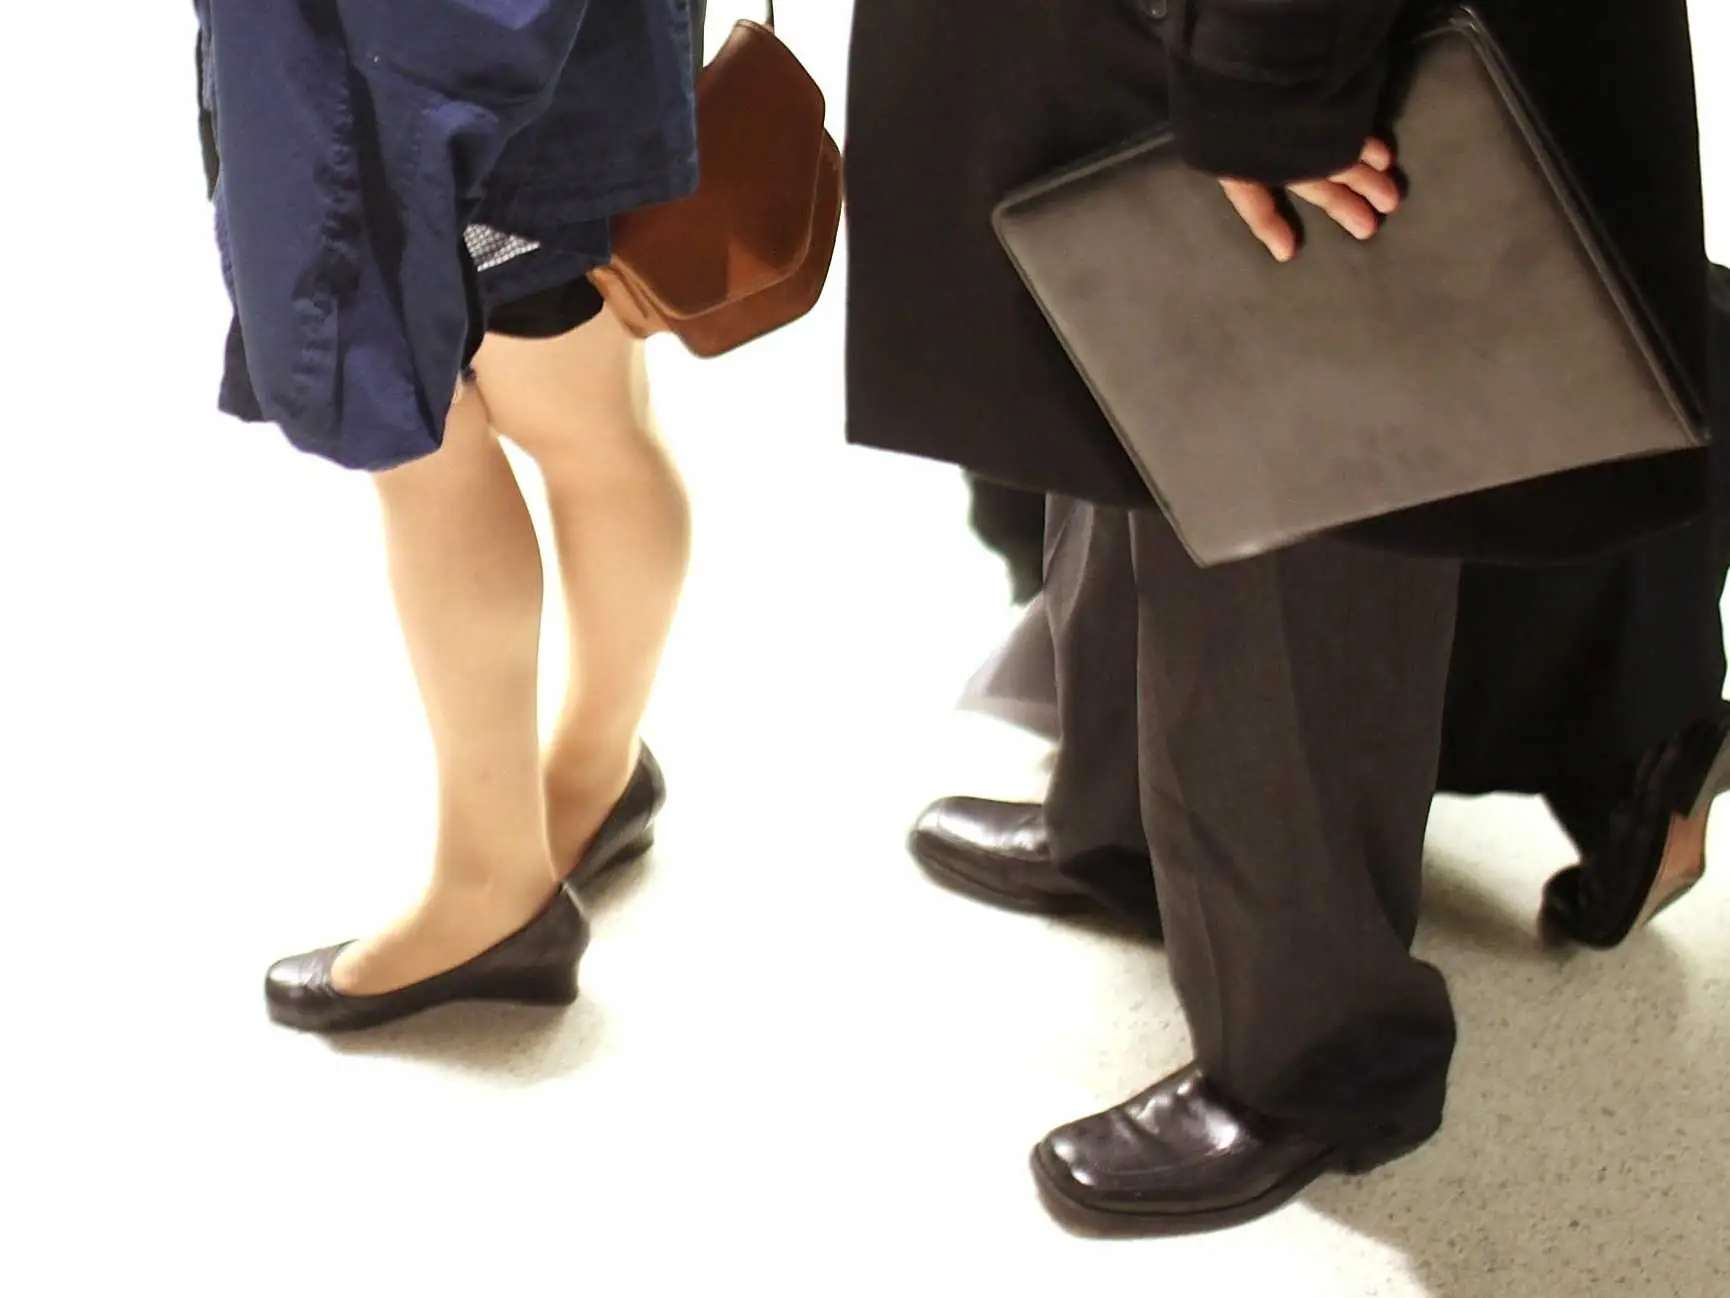 22 Ways Your Office Job Is Destroying Body Financial Post Cut Engineer Best Safety Boots Iron Apple Soft Brown Uncomfortable Shoes May Eventually Lead To Spinal Injuries Muscle Spasms And Chronic Headaches